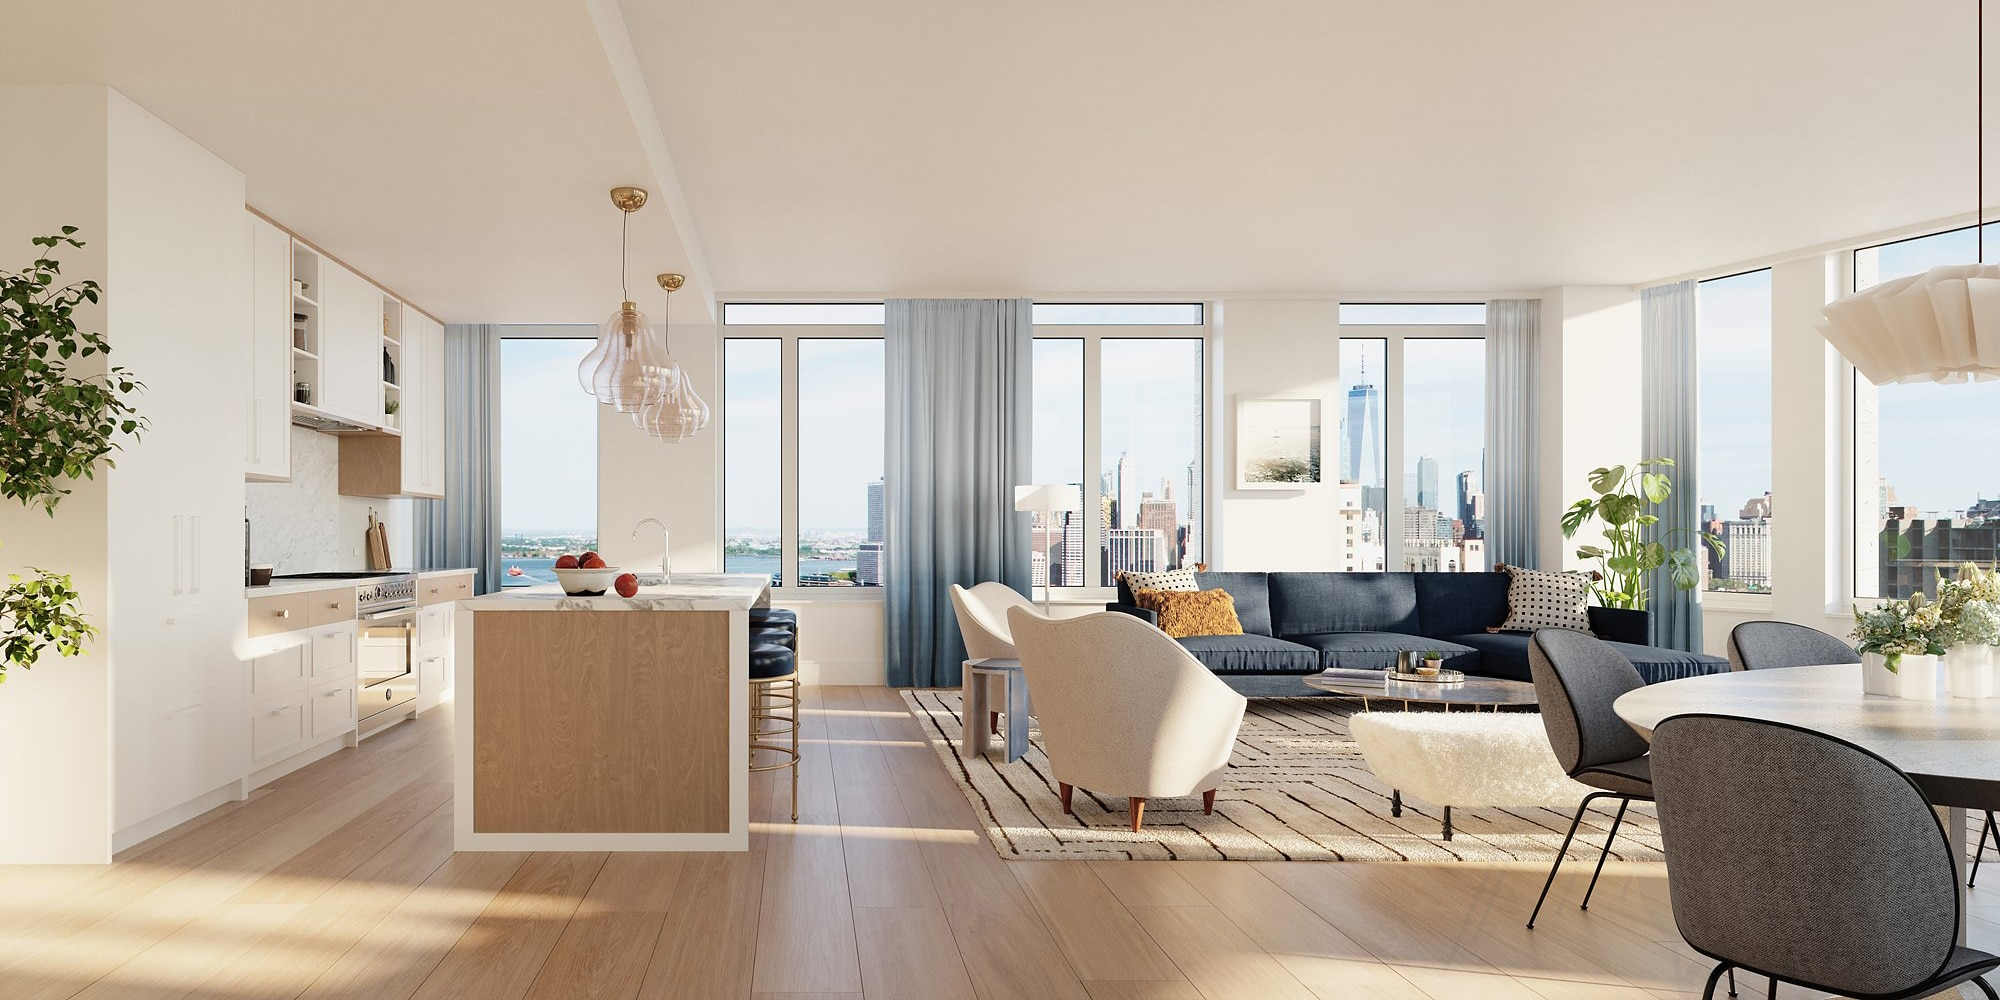 Interior of One Clinton condos in NYC. Open layout showing the kitchen and living room with white walls and tall windows.